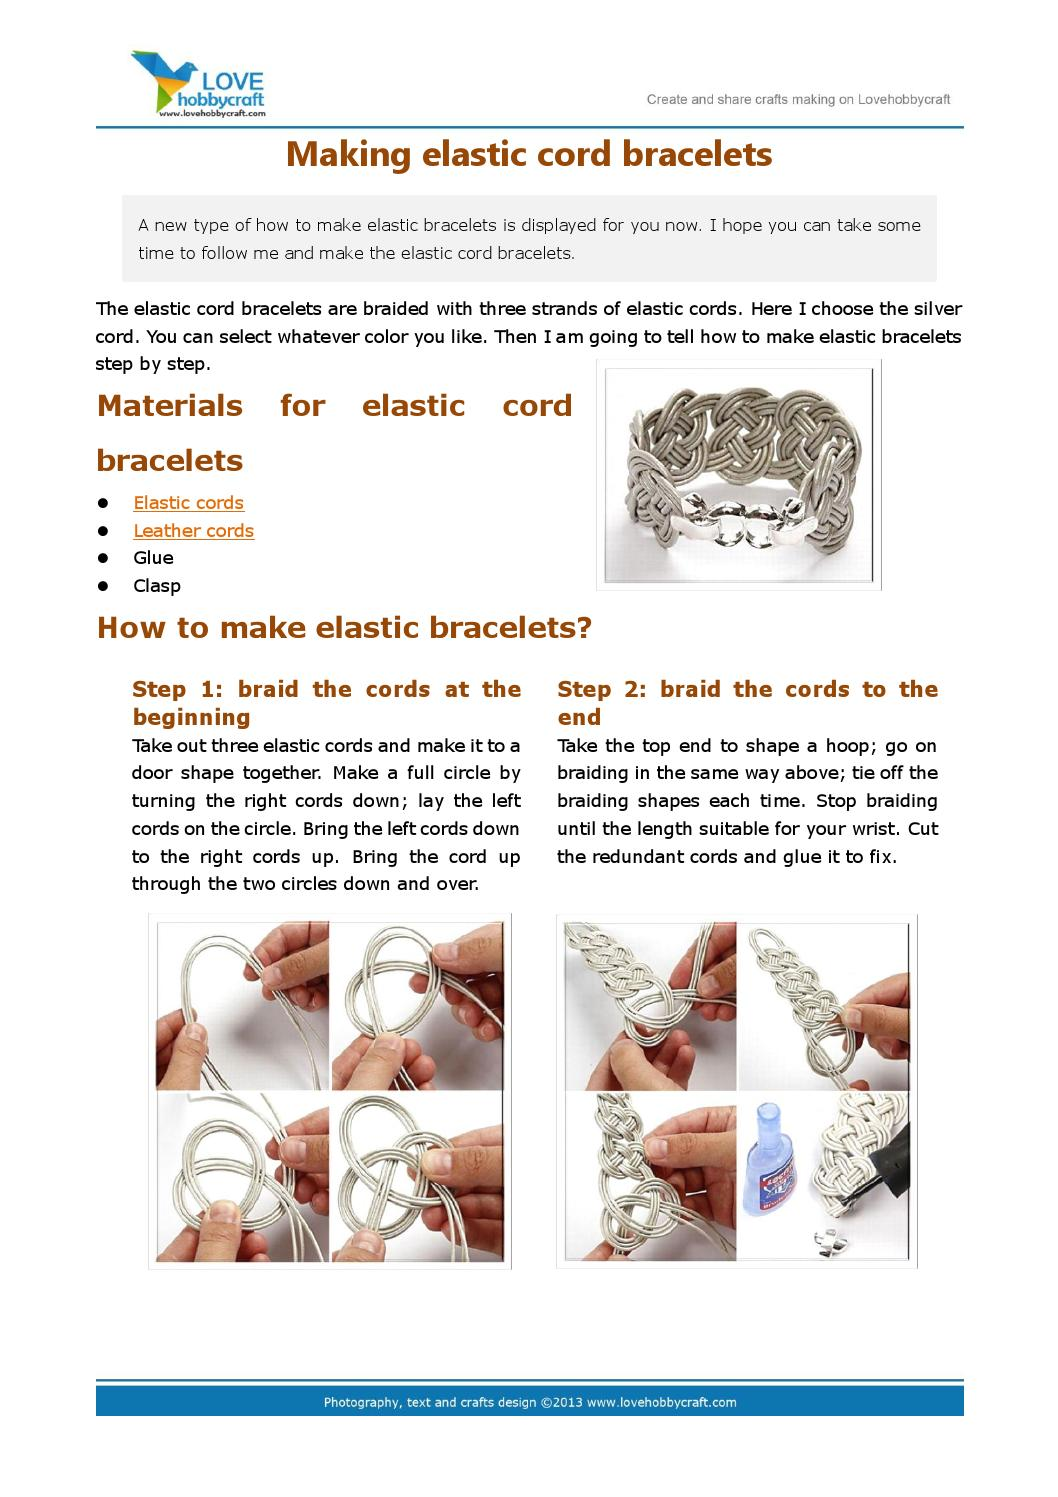 Making Elastic Cord Bracelets By Green Ada Issuu